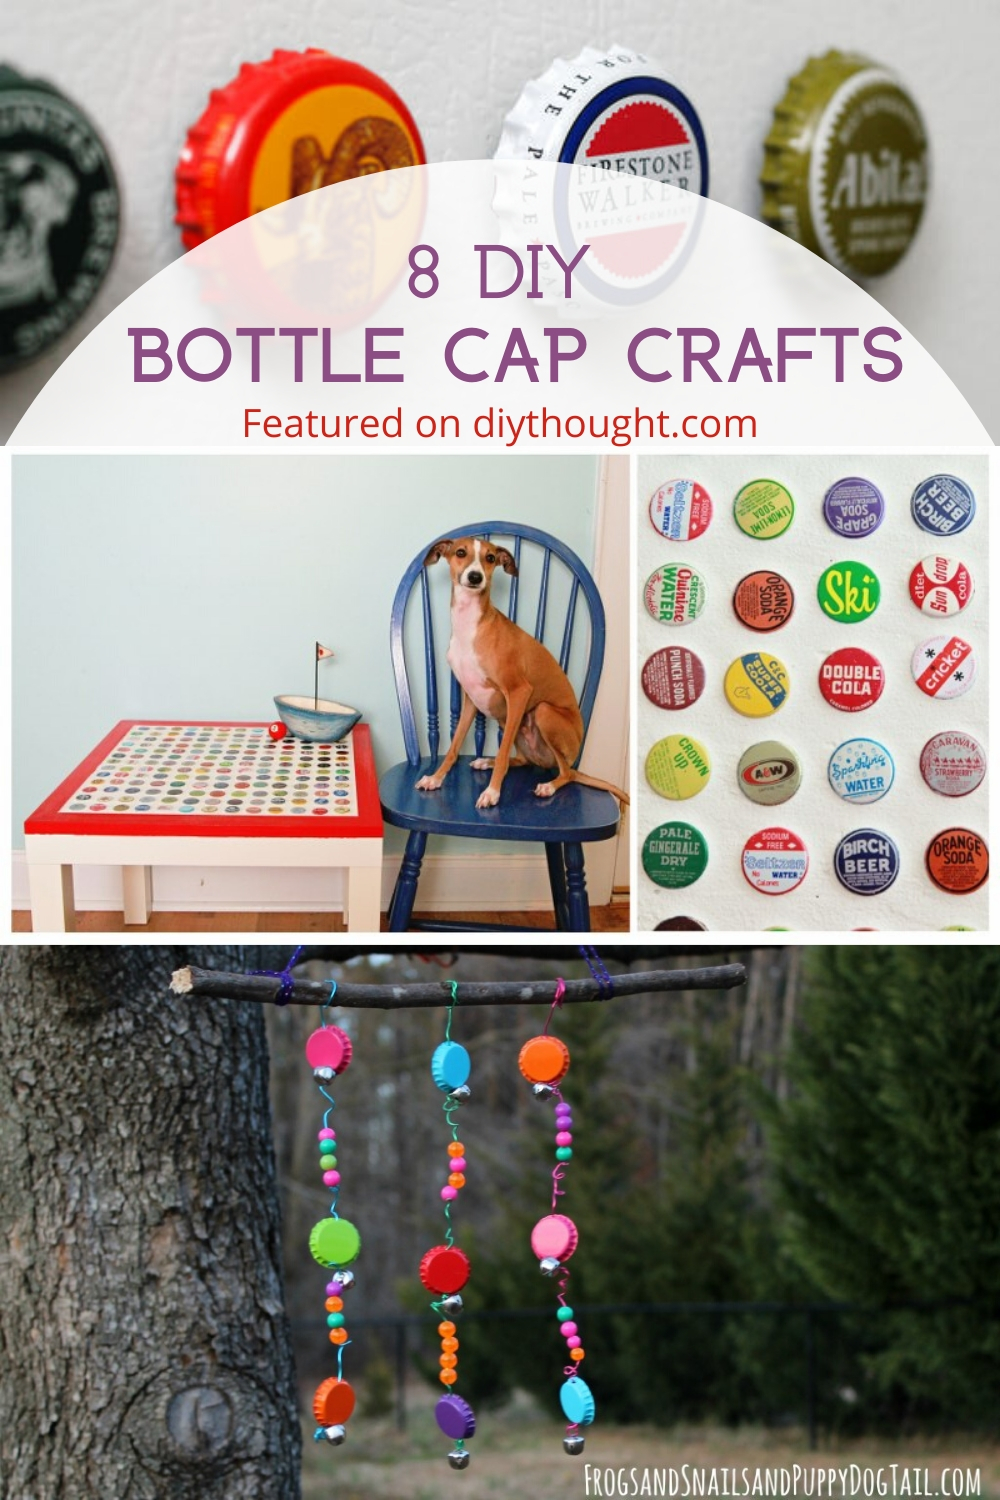 8 DIY bottle cap crafts